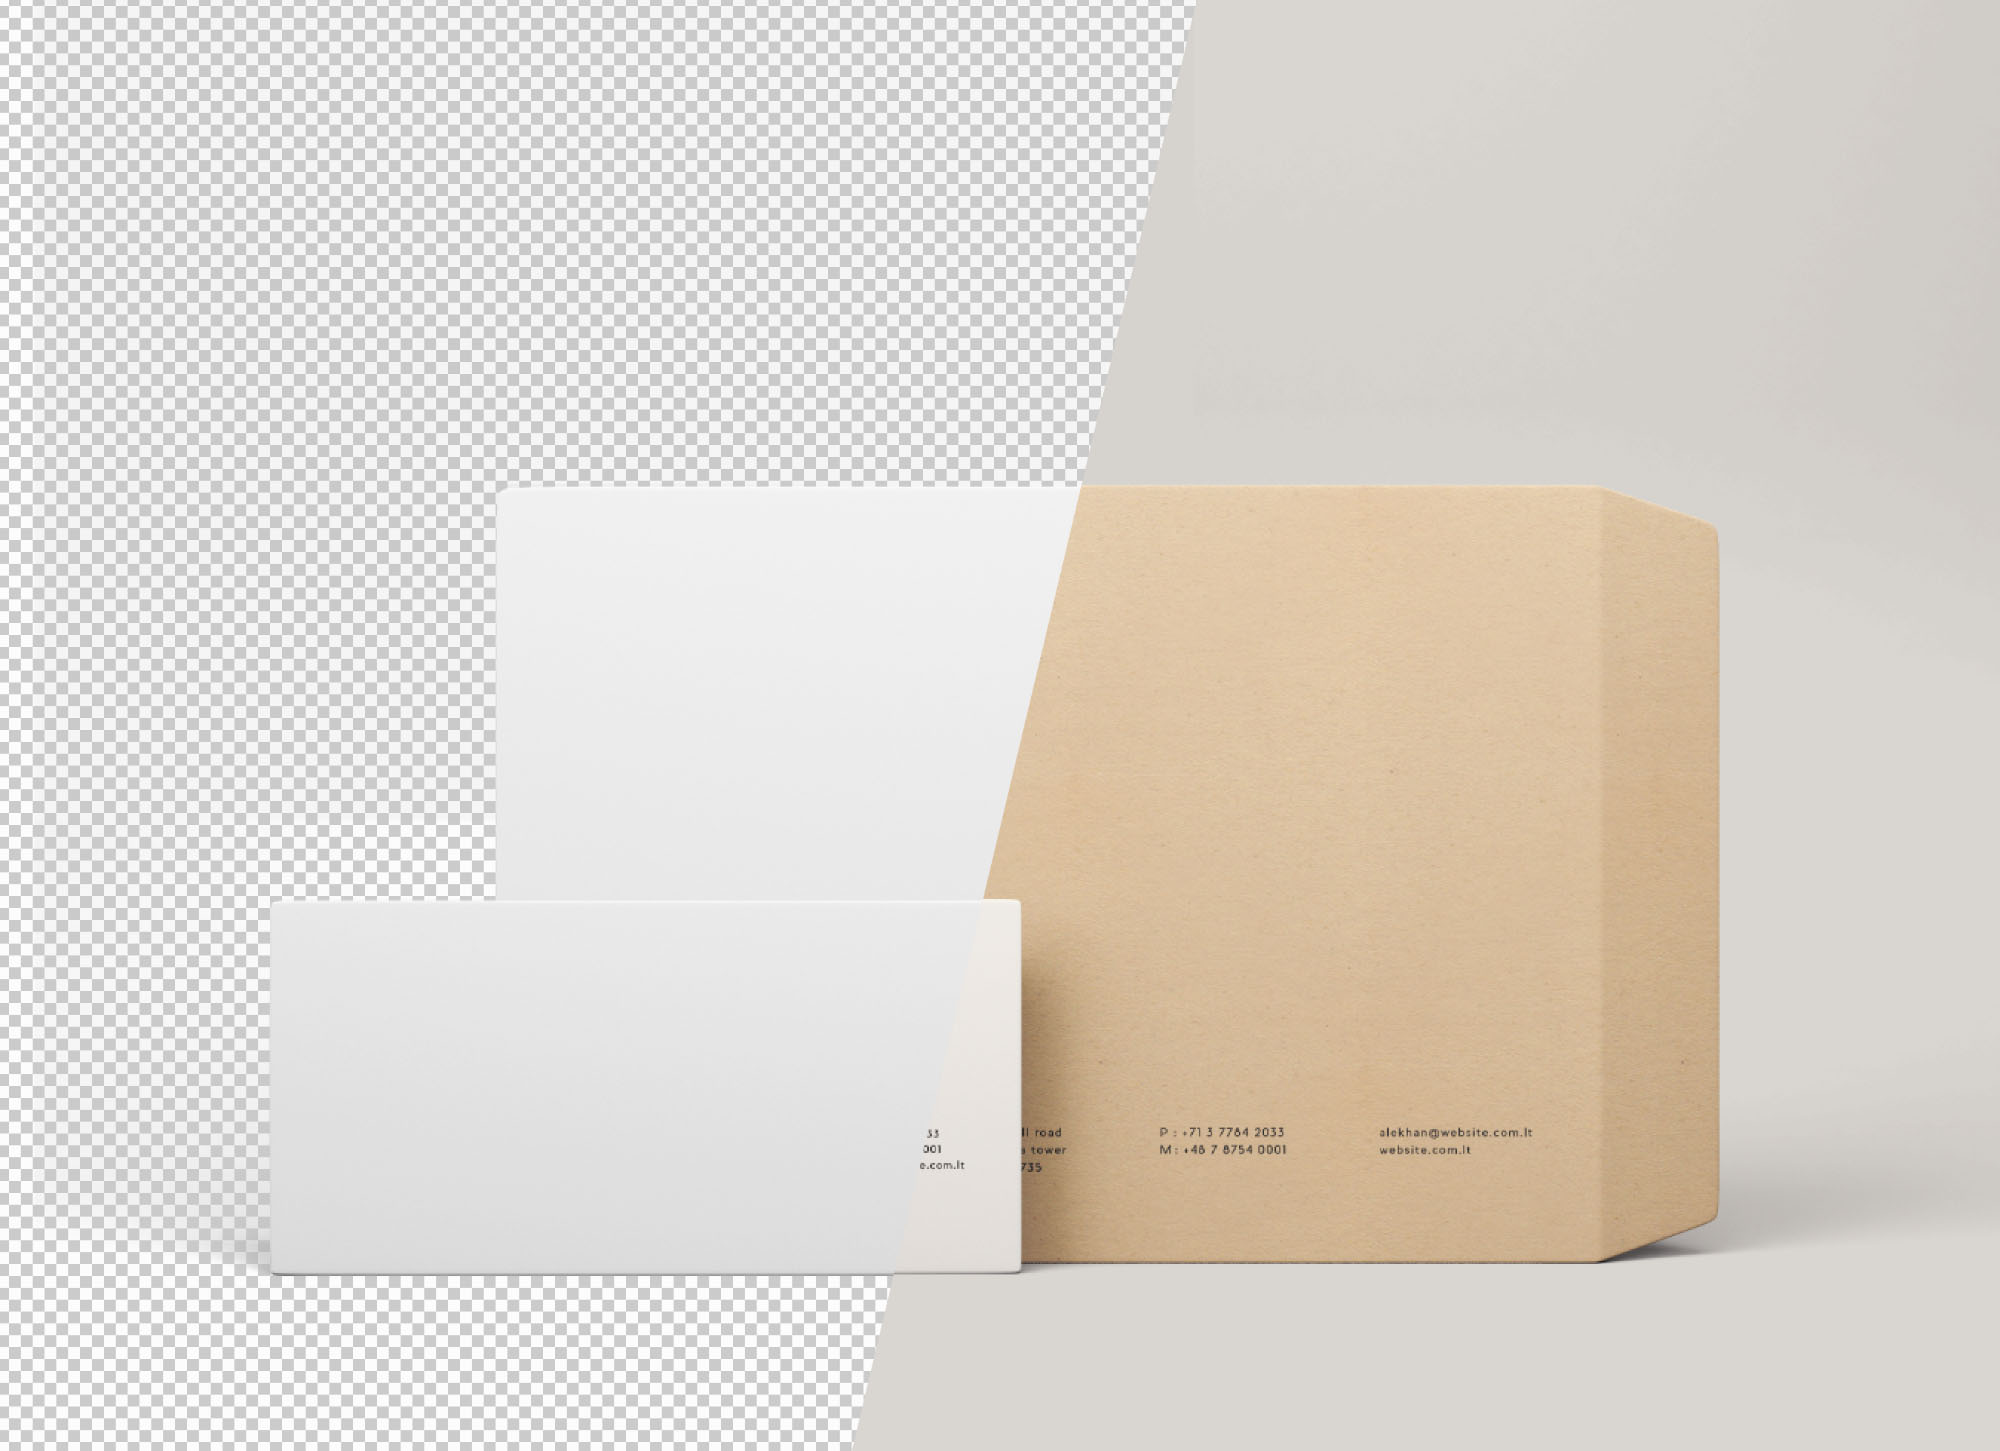 Envelope Mockups - Transparent